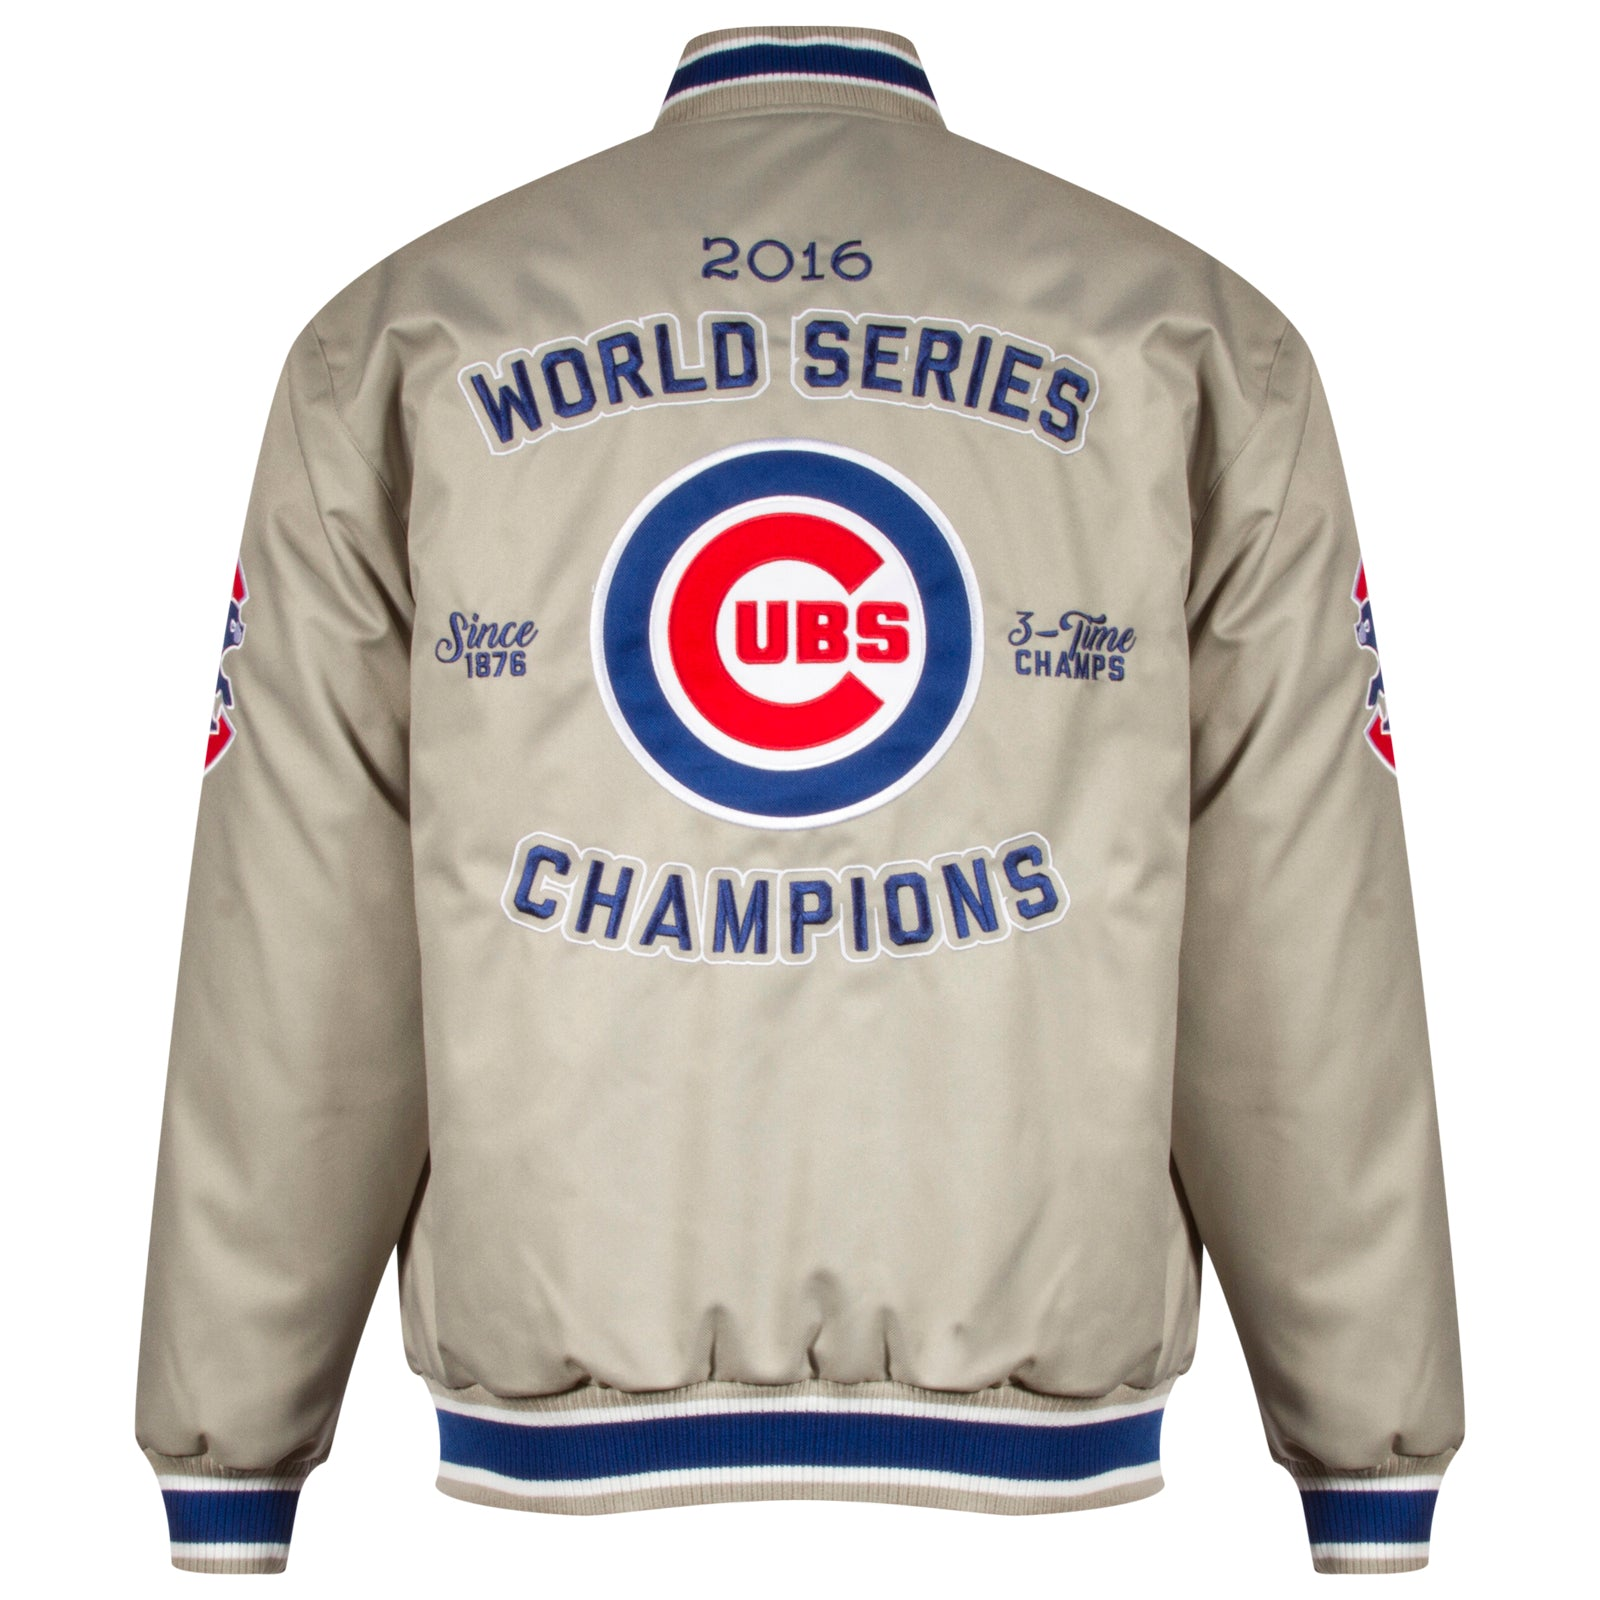 LOGO  /& STRIPES BUTTON CHICAGO CUBS 2016 WORLD SERIES CHAMPIONS